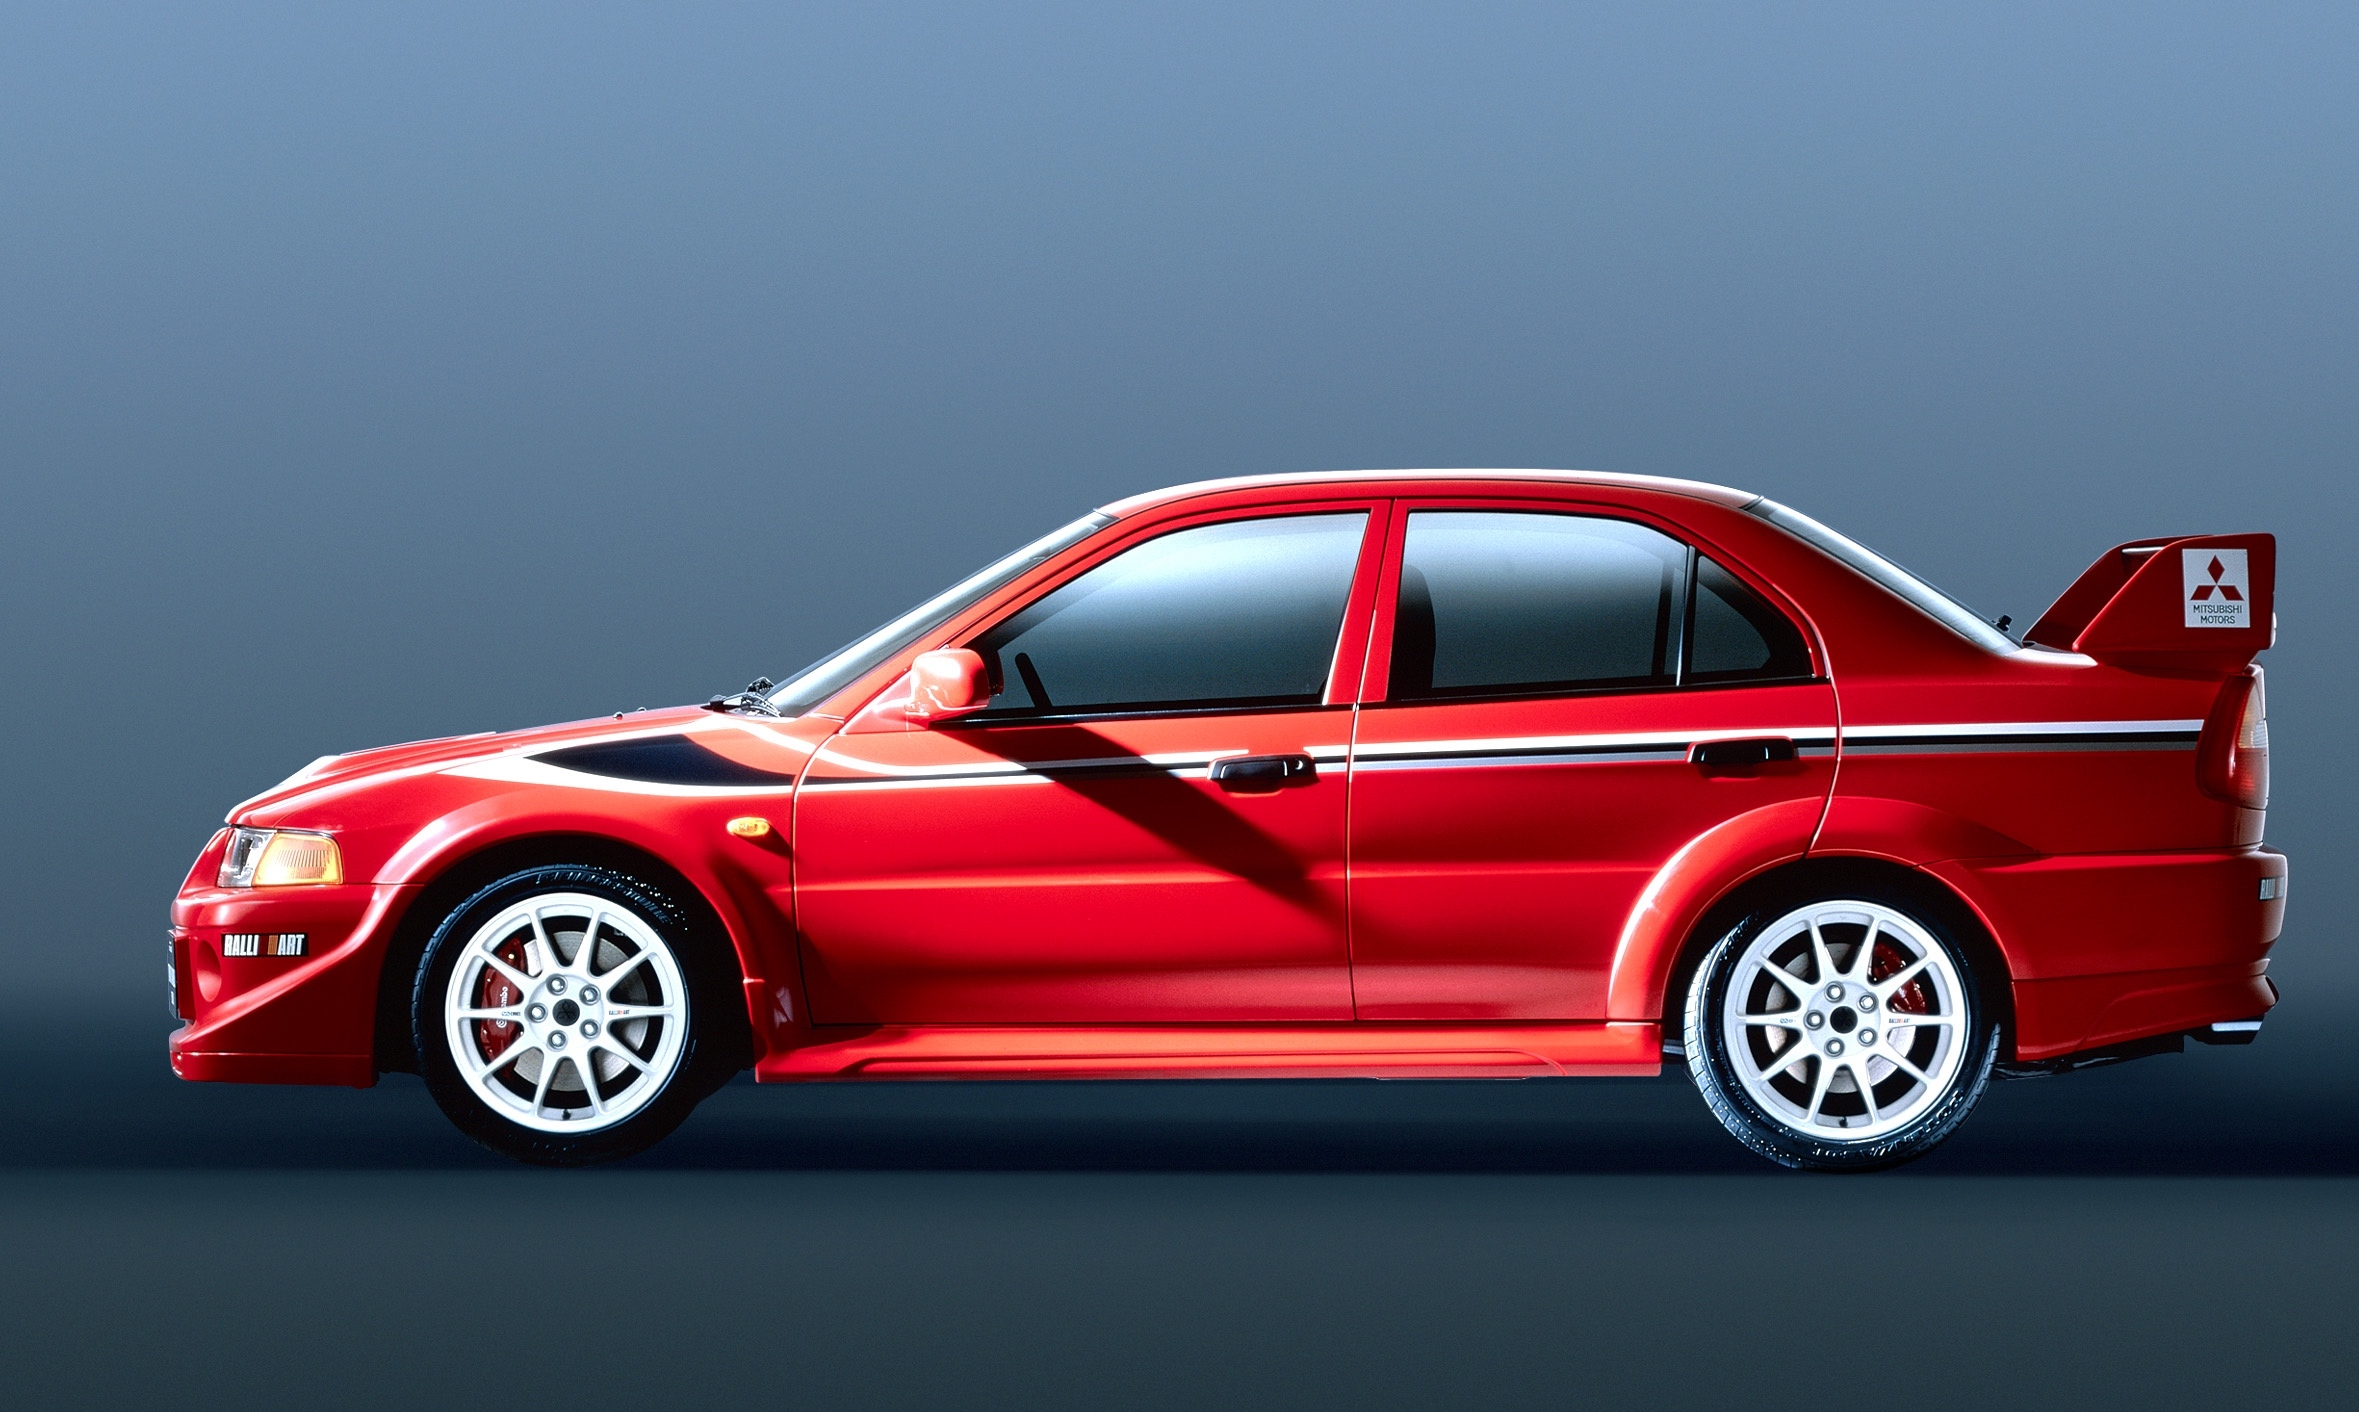 The Lancer Evo took huge amounts of inspiration from rallying